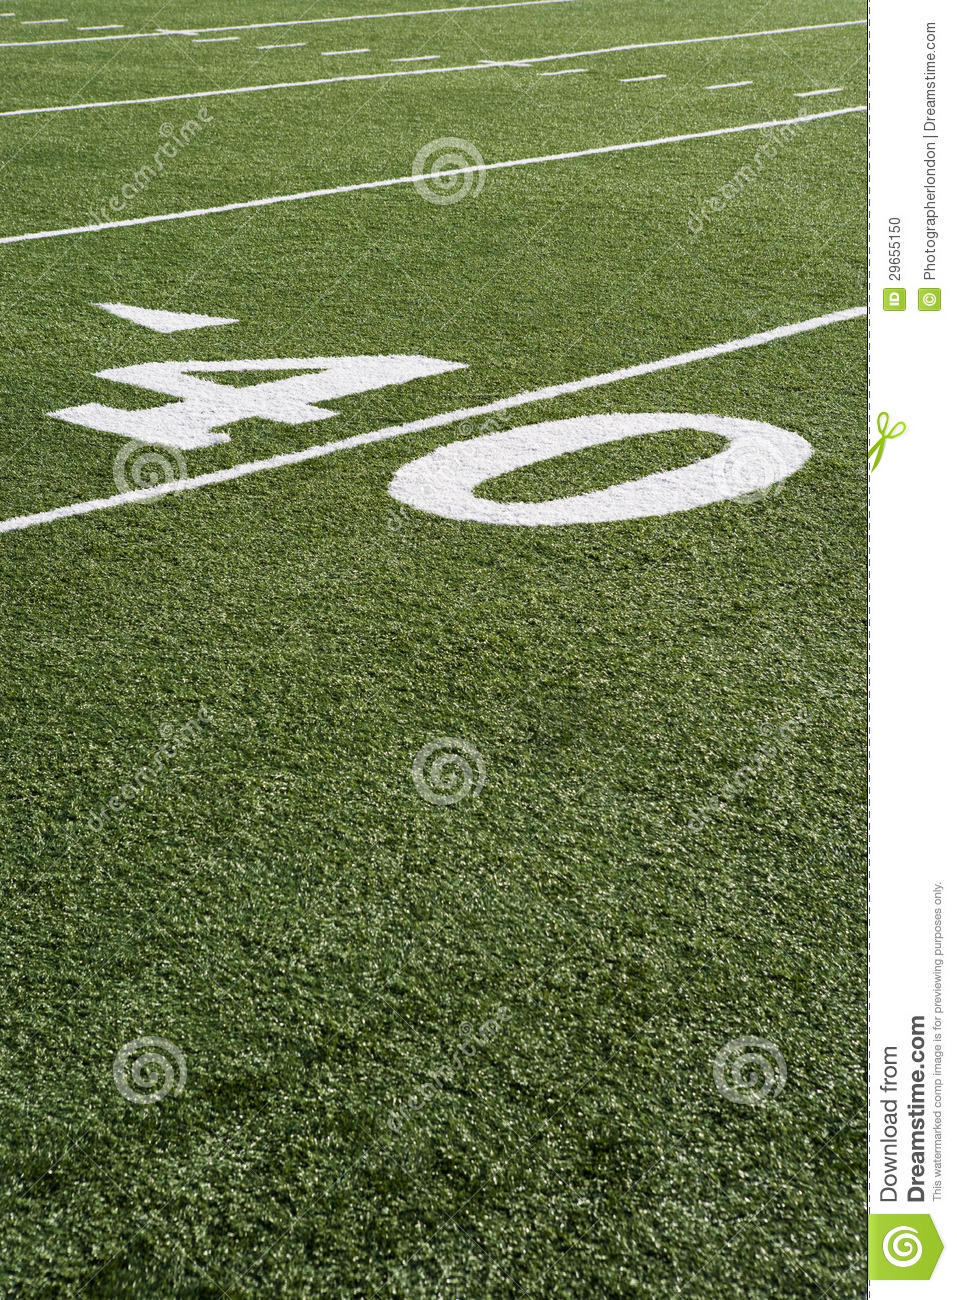 40 Yard Line On American Football Field Stock Photo  Image 29655150